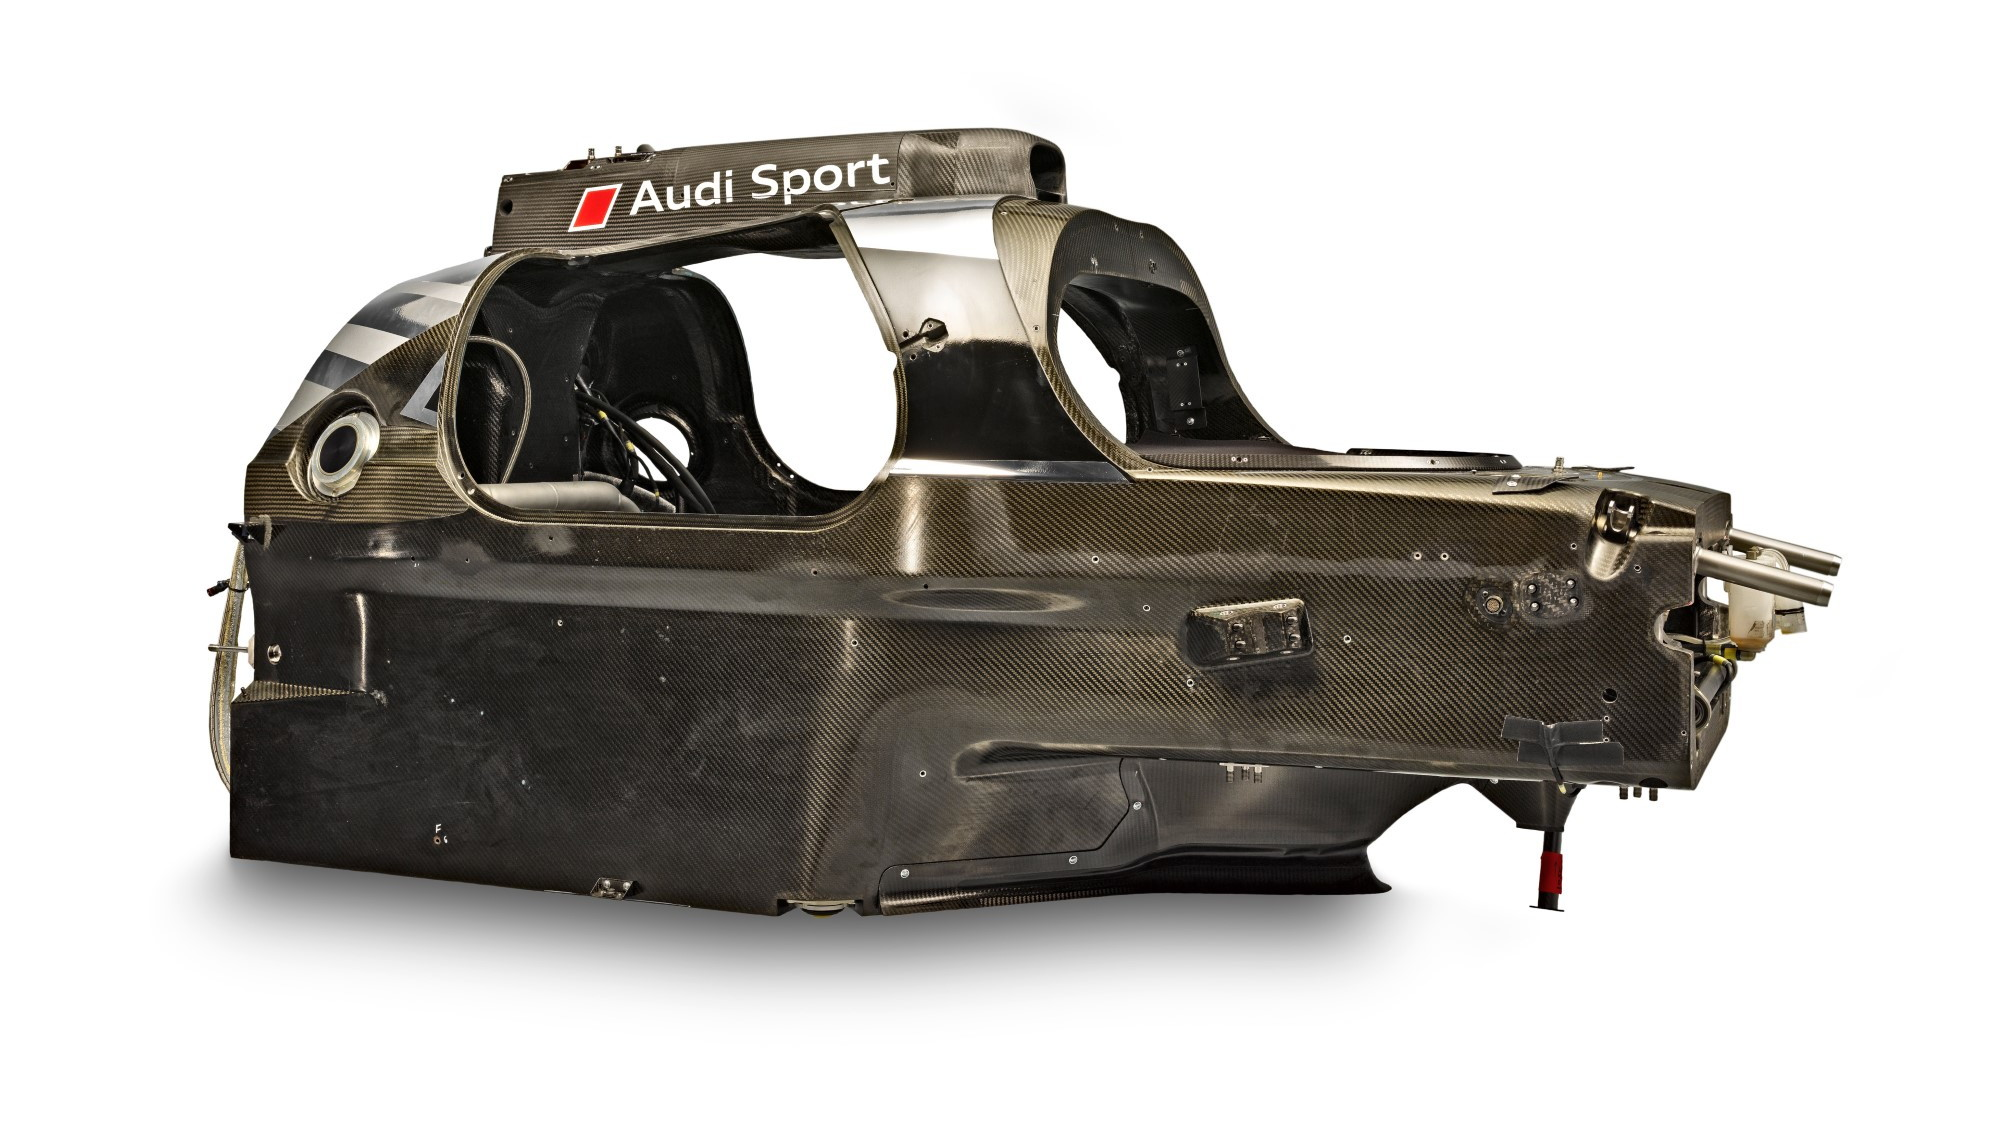 Audi Le Mans prototypes, lightness through carbon fiber